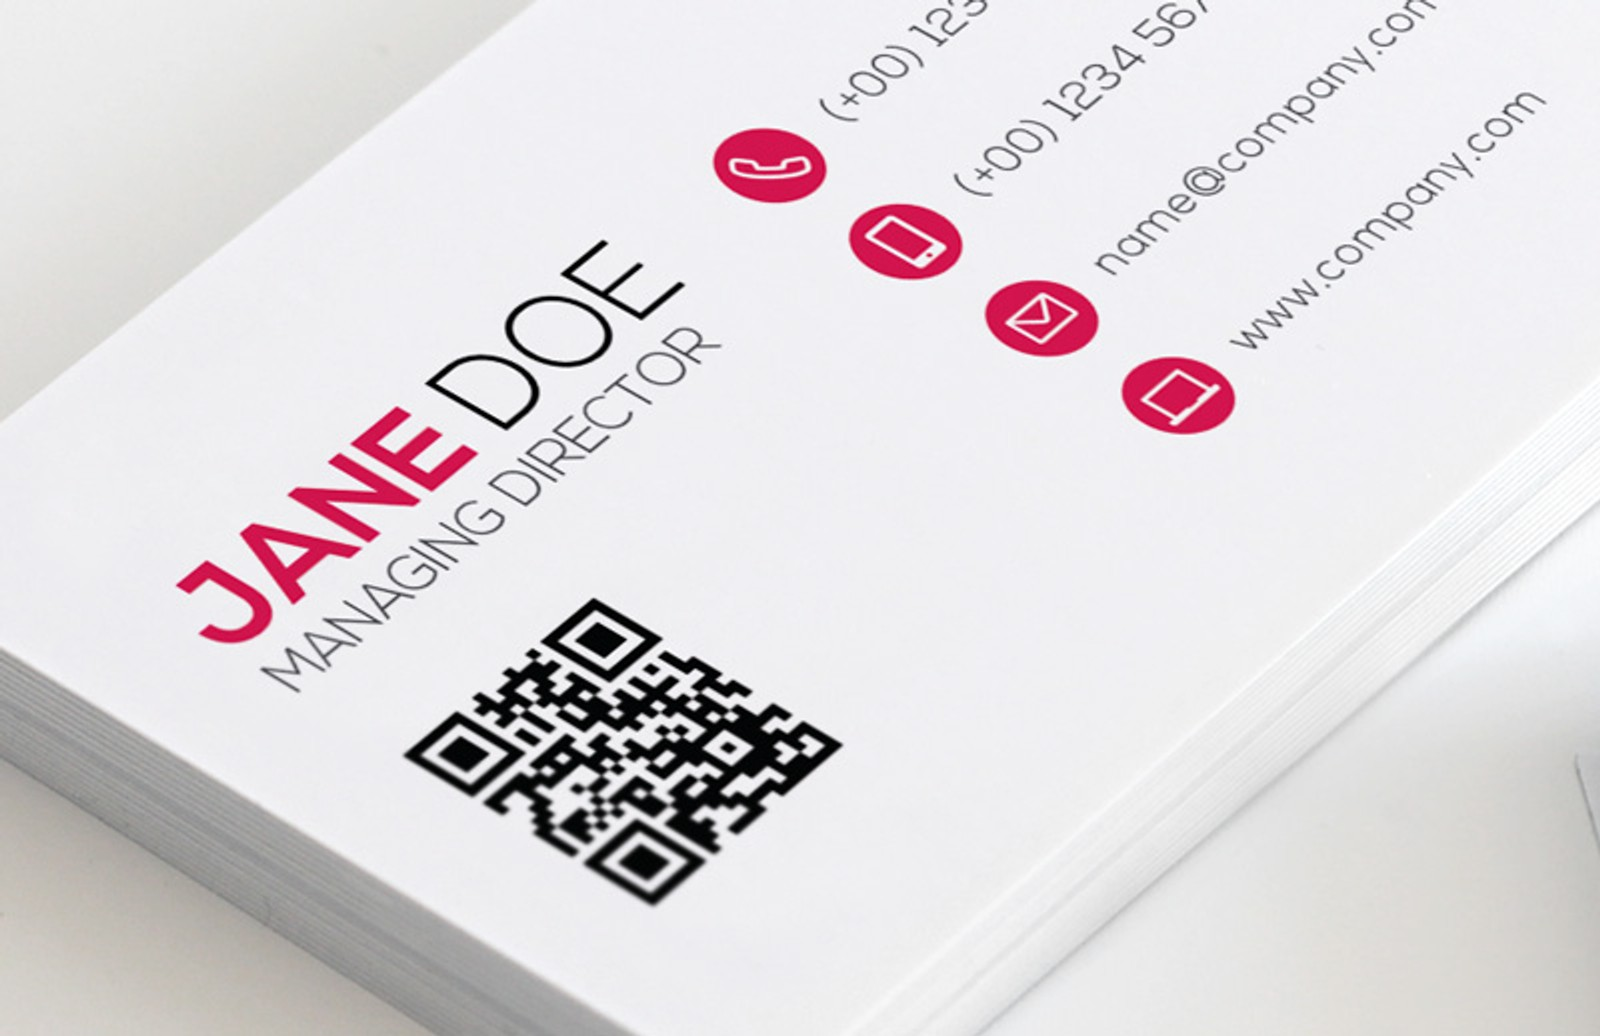 Qr code business card template vol 2 medialoot qr code business card vol 2 preview 1 colourmoves Images